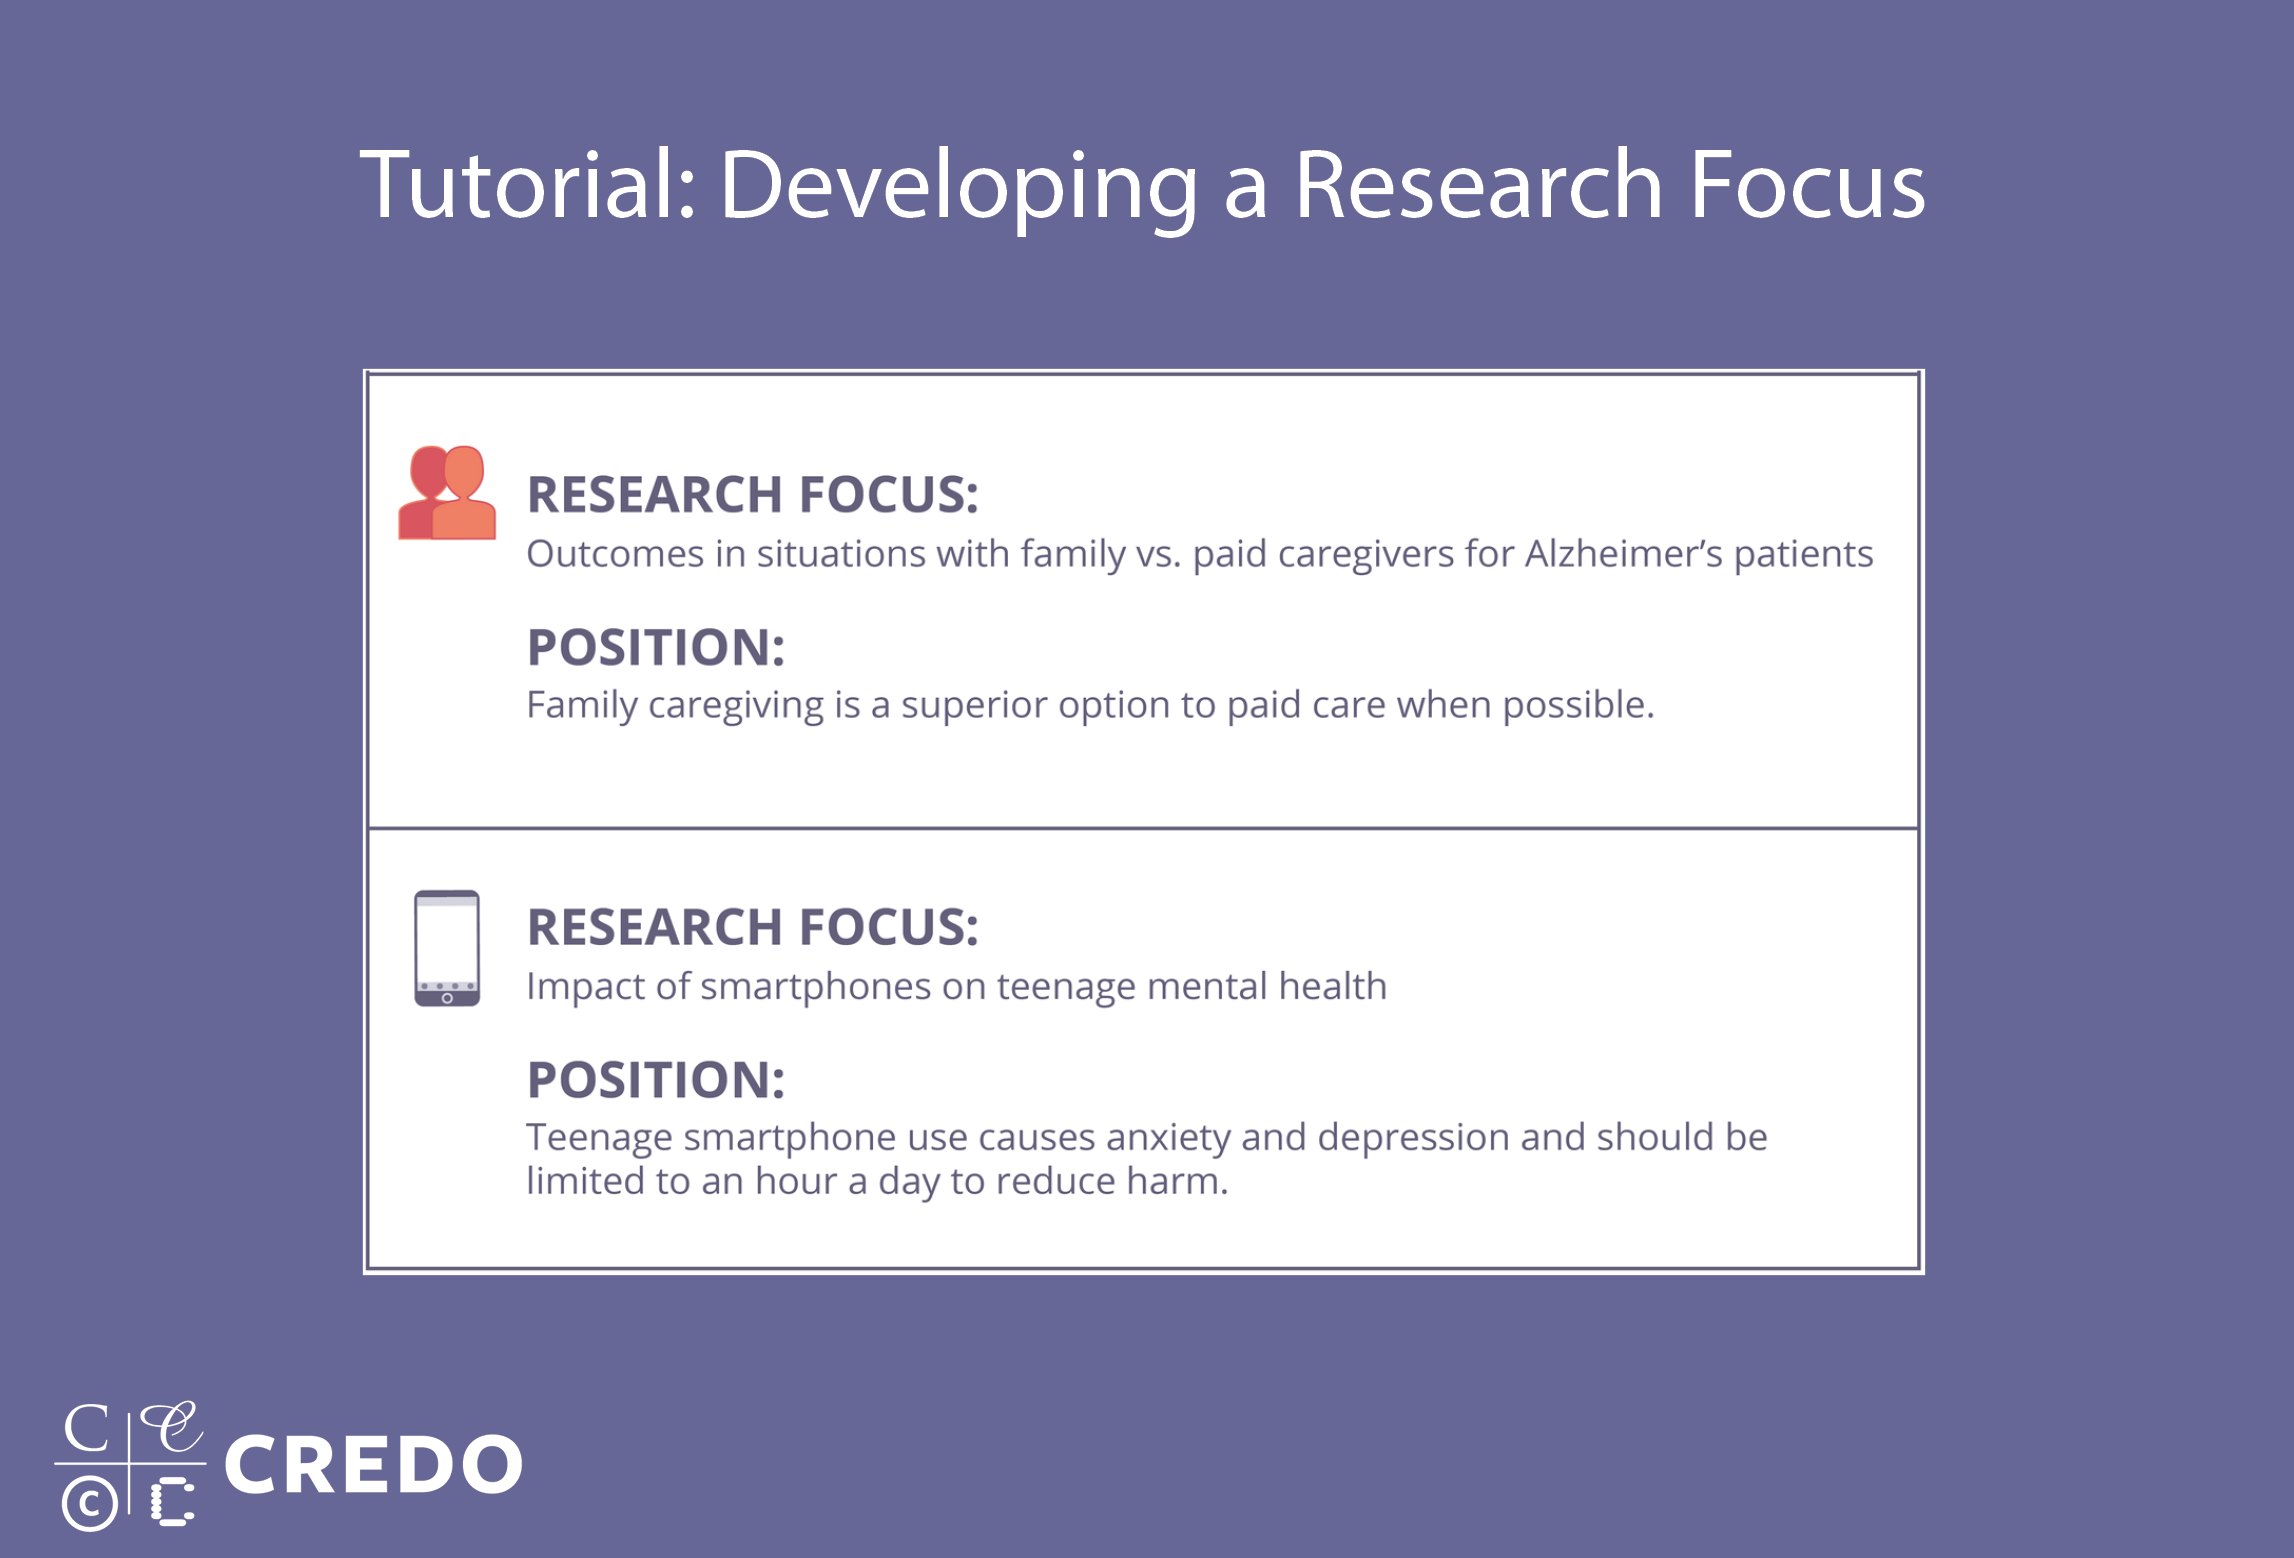 Tutorial: Developing a Research Focus.